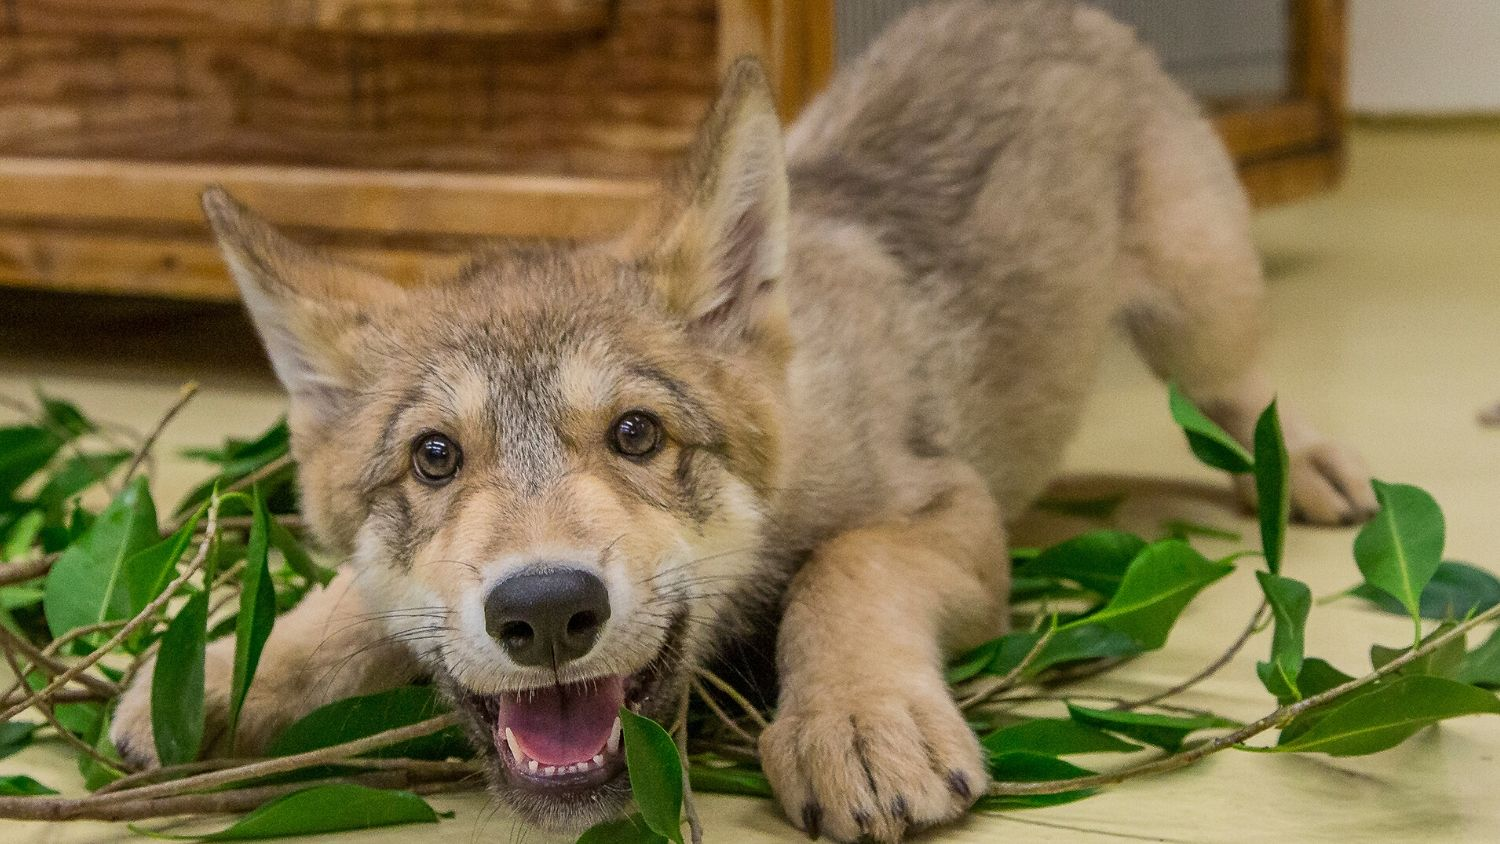 Shadow, a wolf at the San Diego Zoo, when he was a pup in 2014.